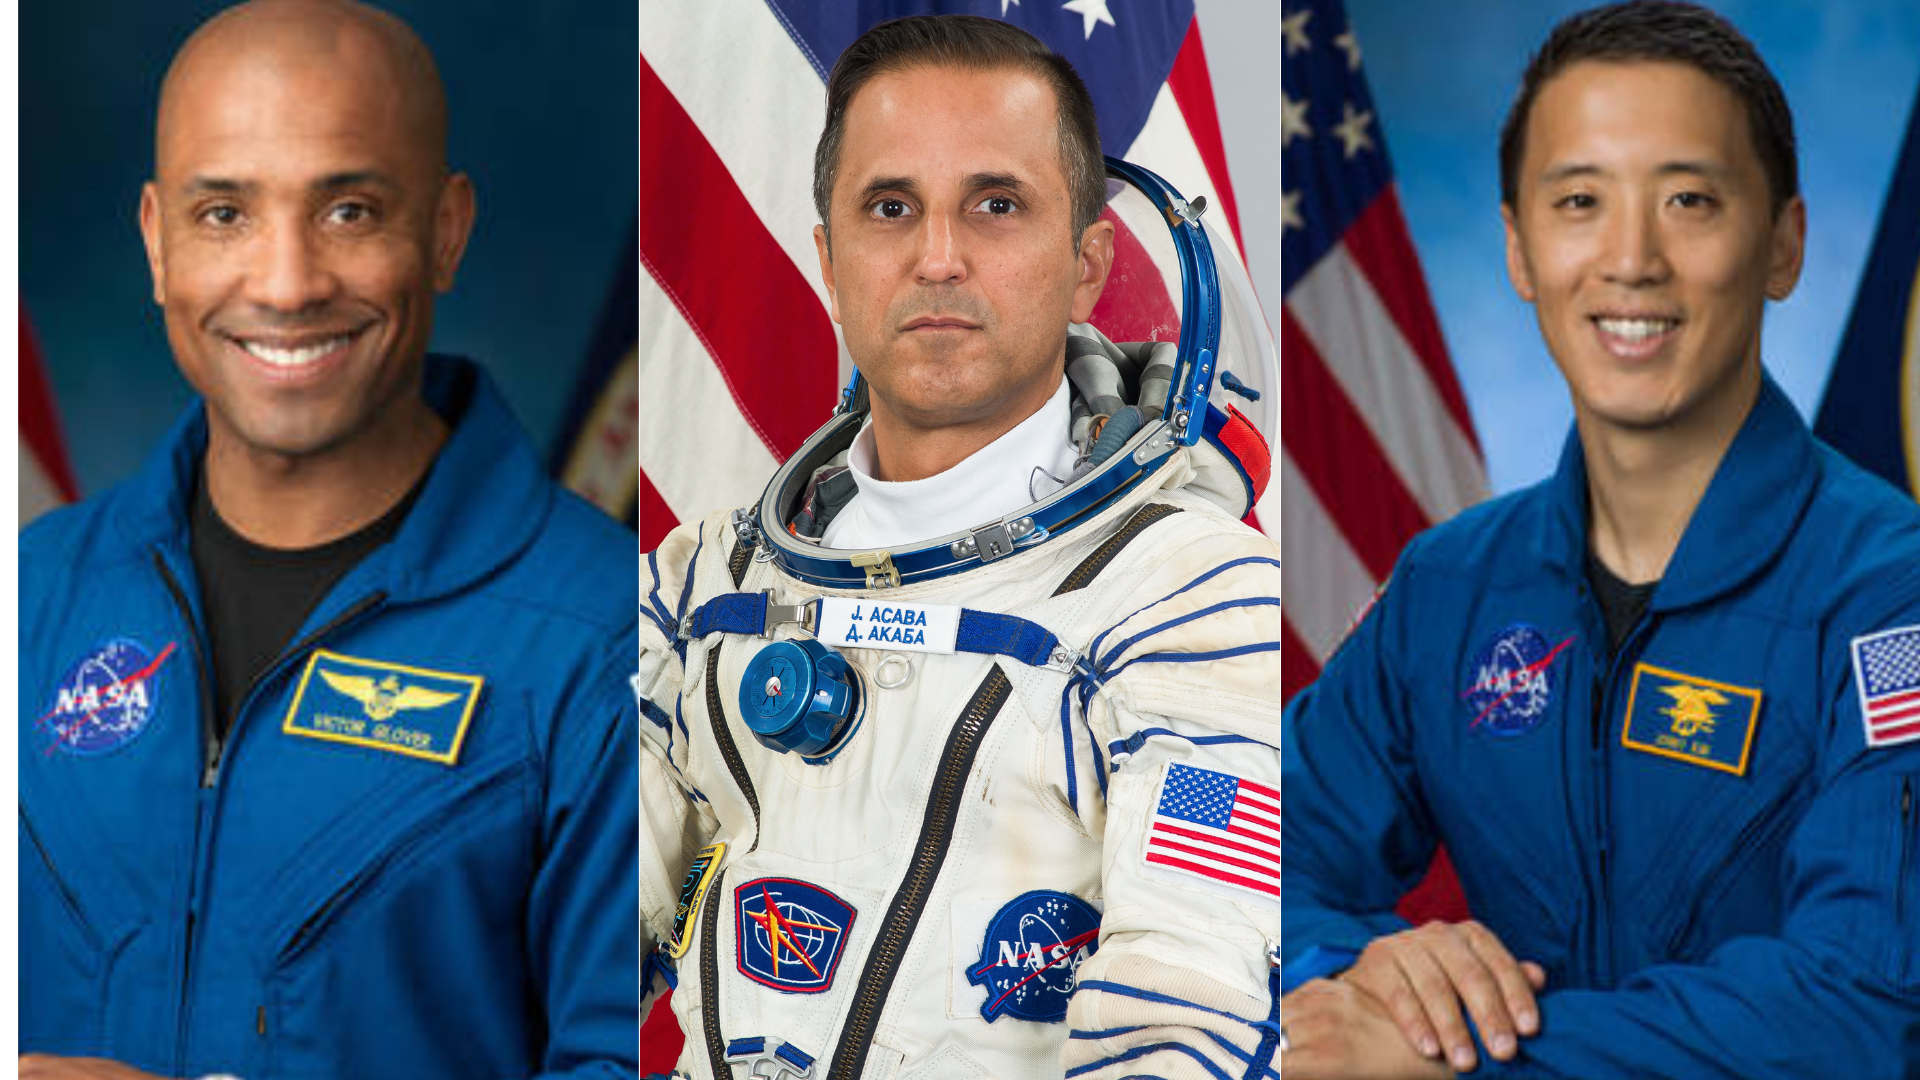 Victor Glover, Joseph Acaba and Jonny Kim appear in portraits released by NASA.